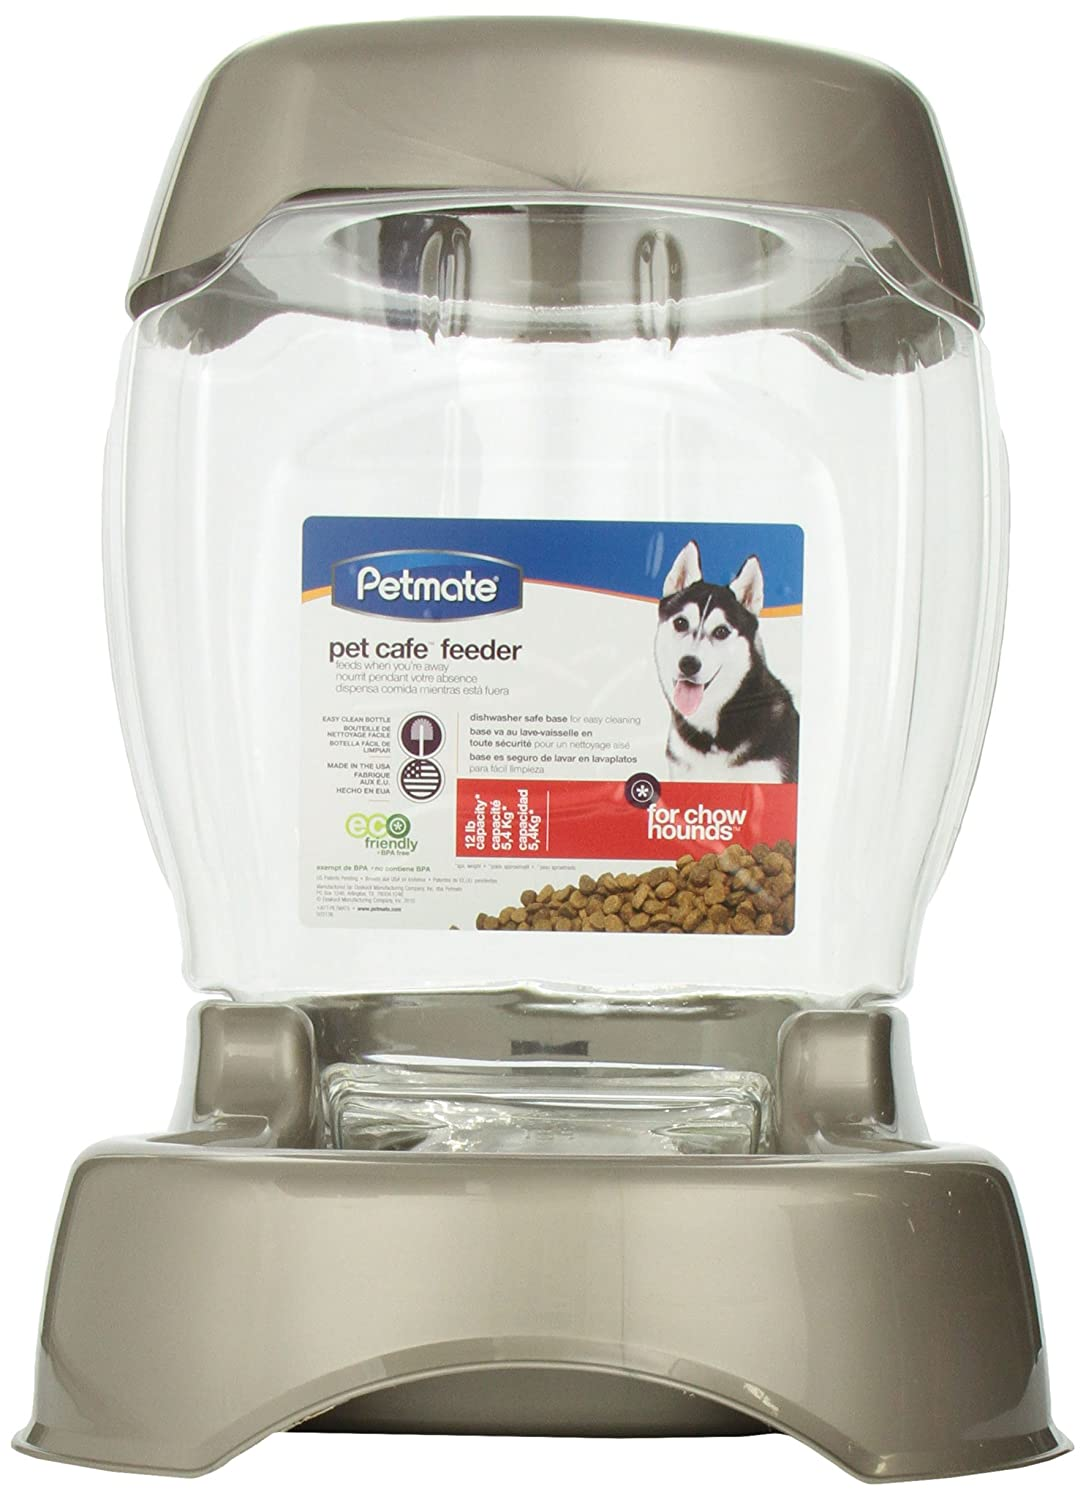 Petmate Pet Cafe Feeder - 12 lbs